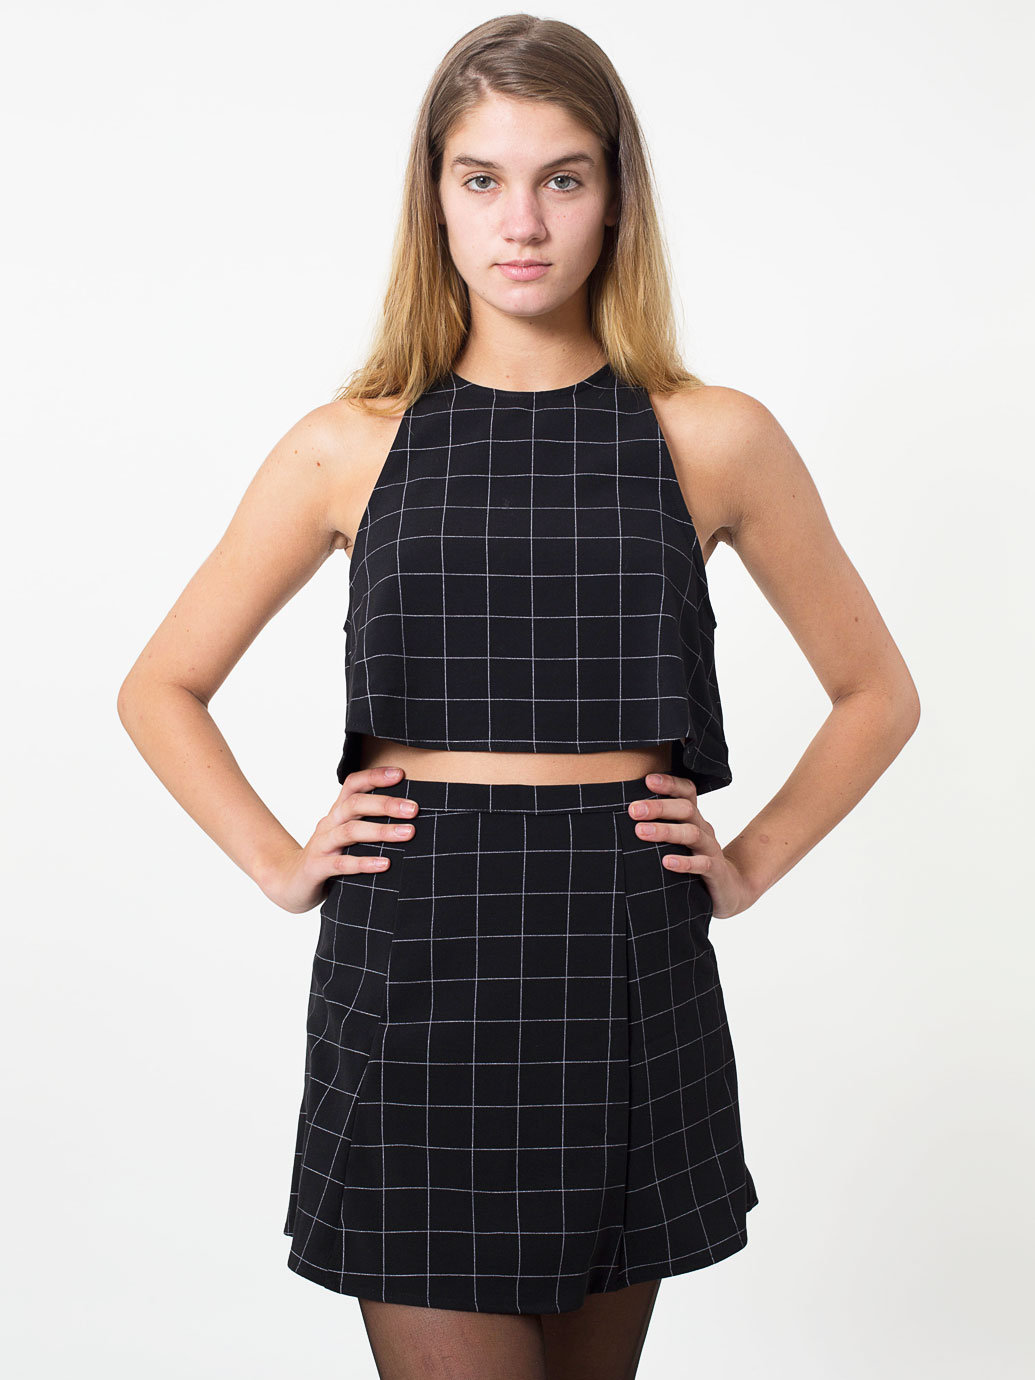 The grid print lulu mini skirt